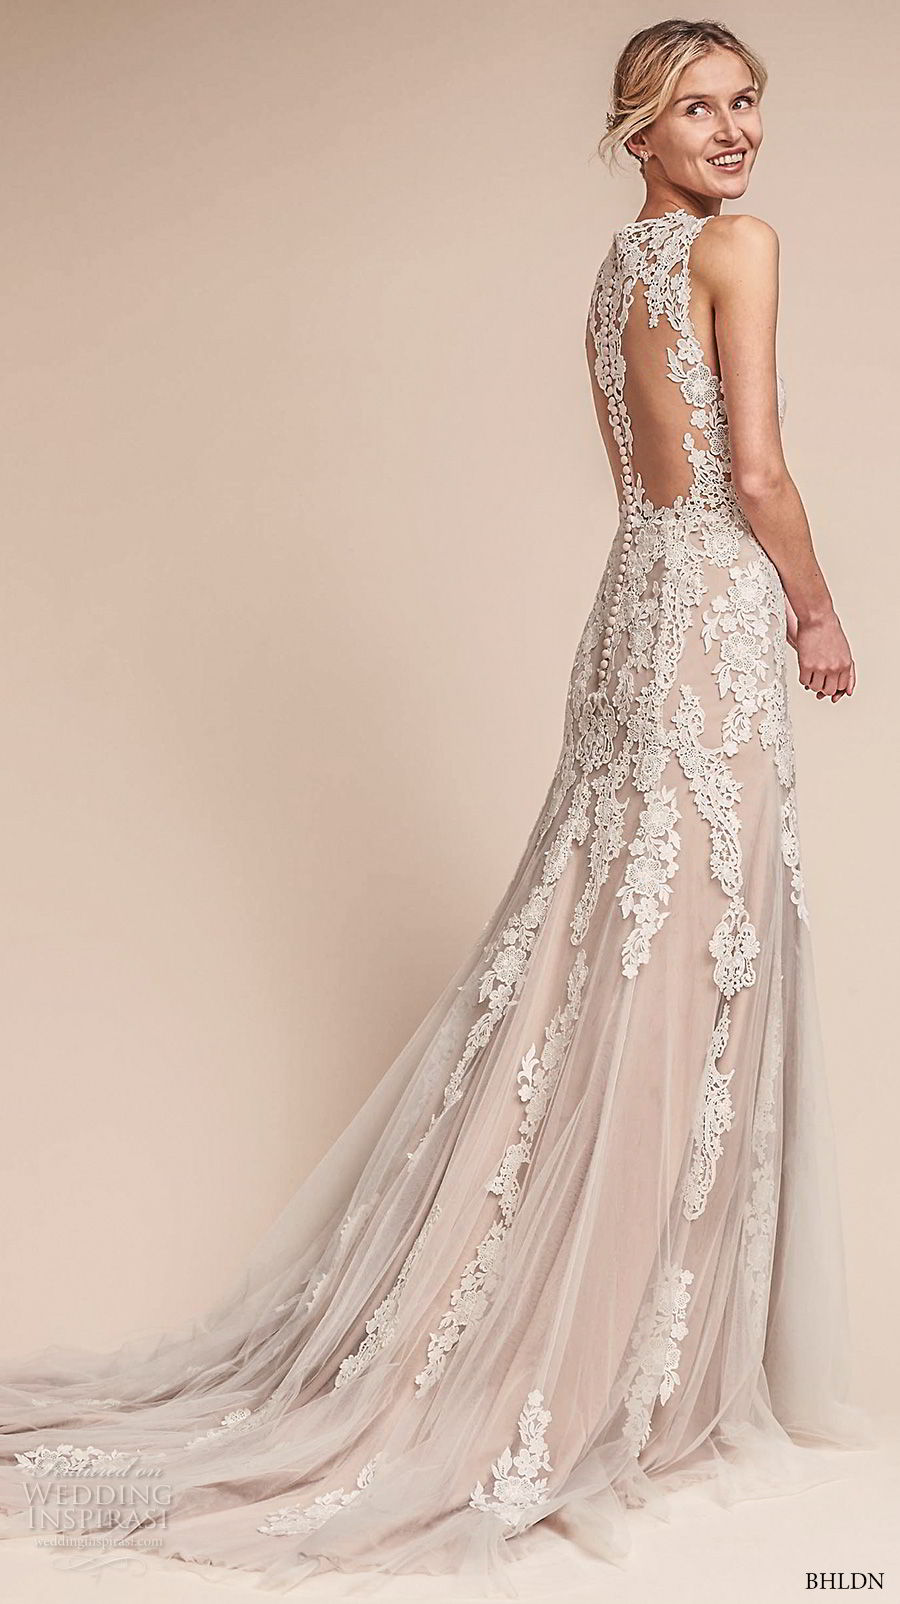 bhldn fall 2017  americana bridal sleeveless embroidered strap heavily embellished bodice elegant romantic sheath a  line wedding dress lace back short train (monarch) bv